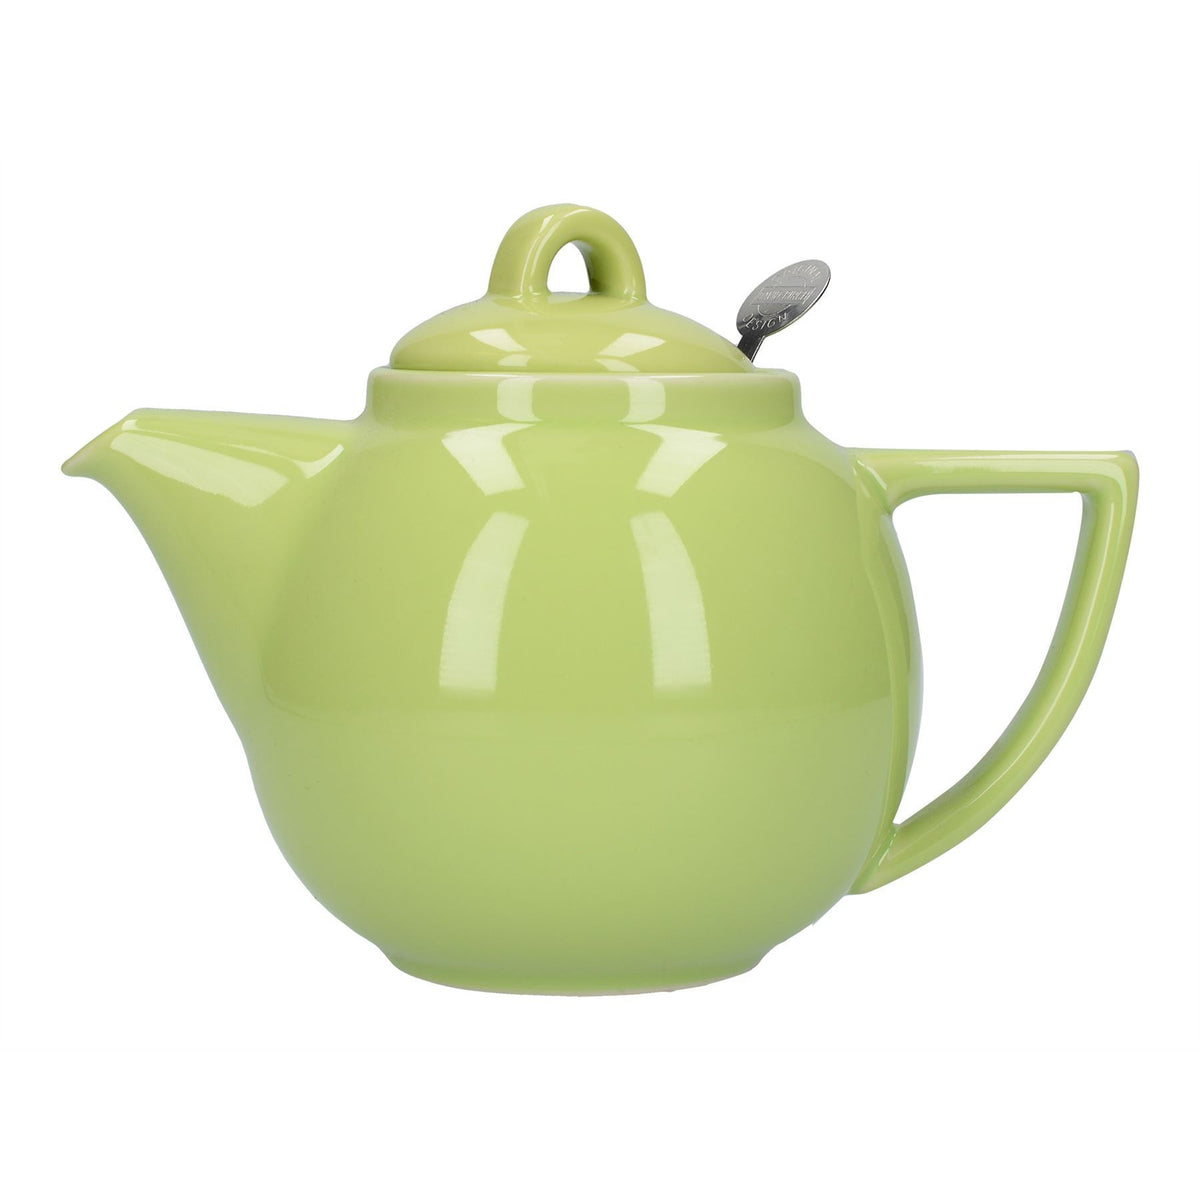 Pistachio 4 Cup Teapot With Infuser Pot Pantry